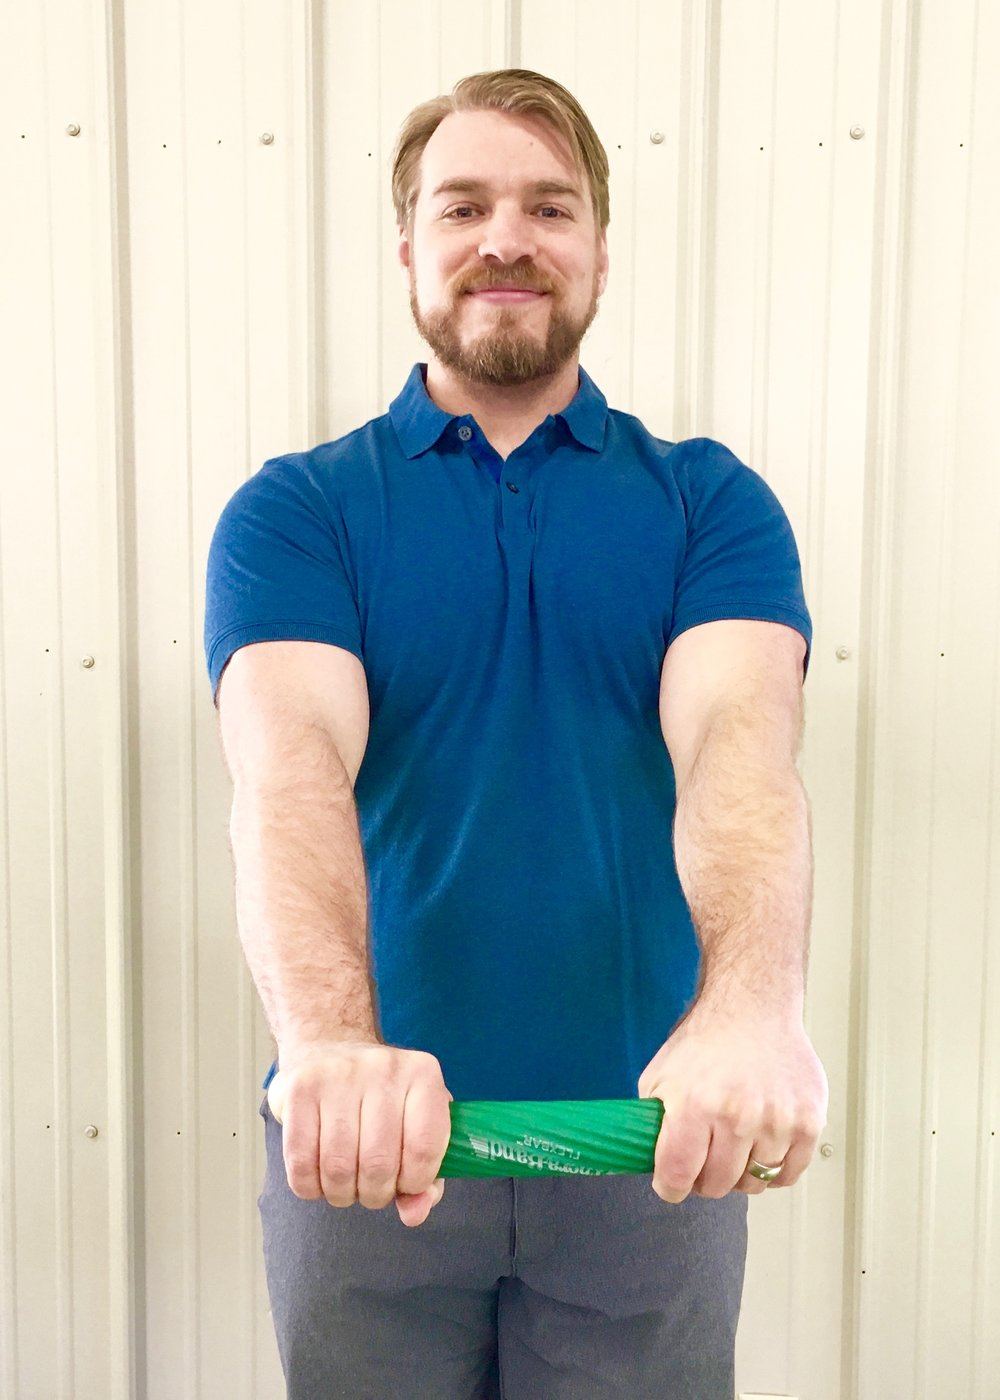 Tennis Elbow Exercise 4 - Straighten both arms while extending the wrist of the injured side.